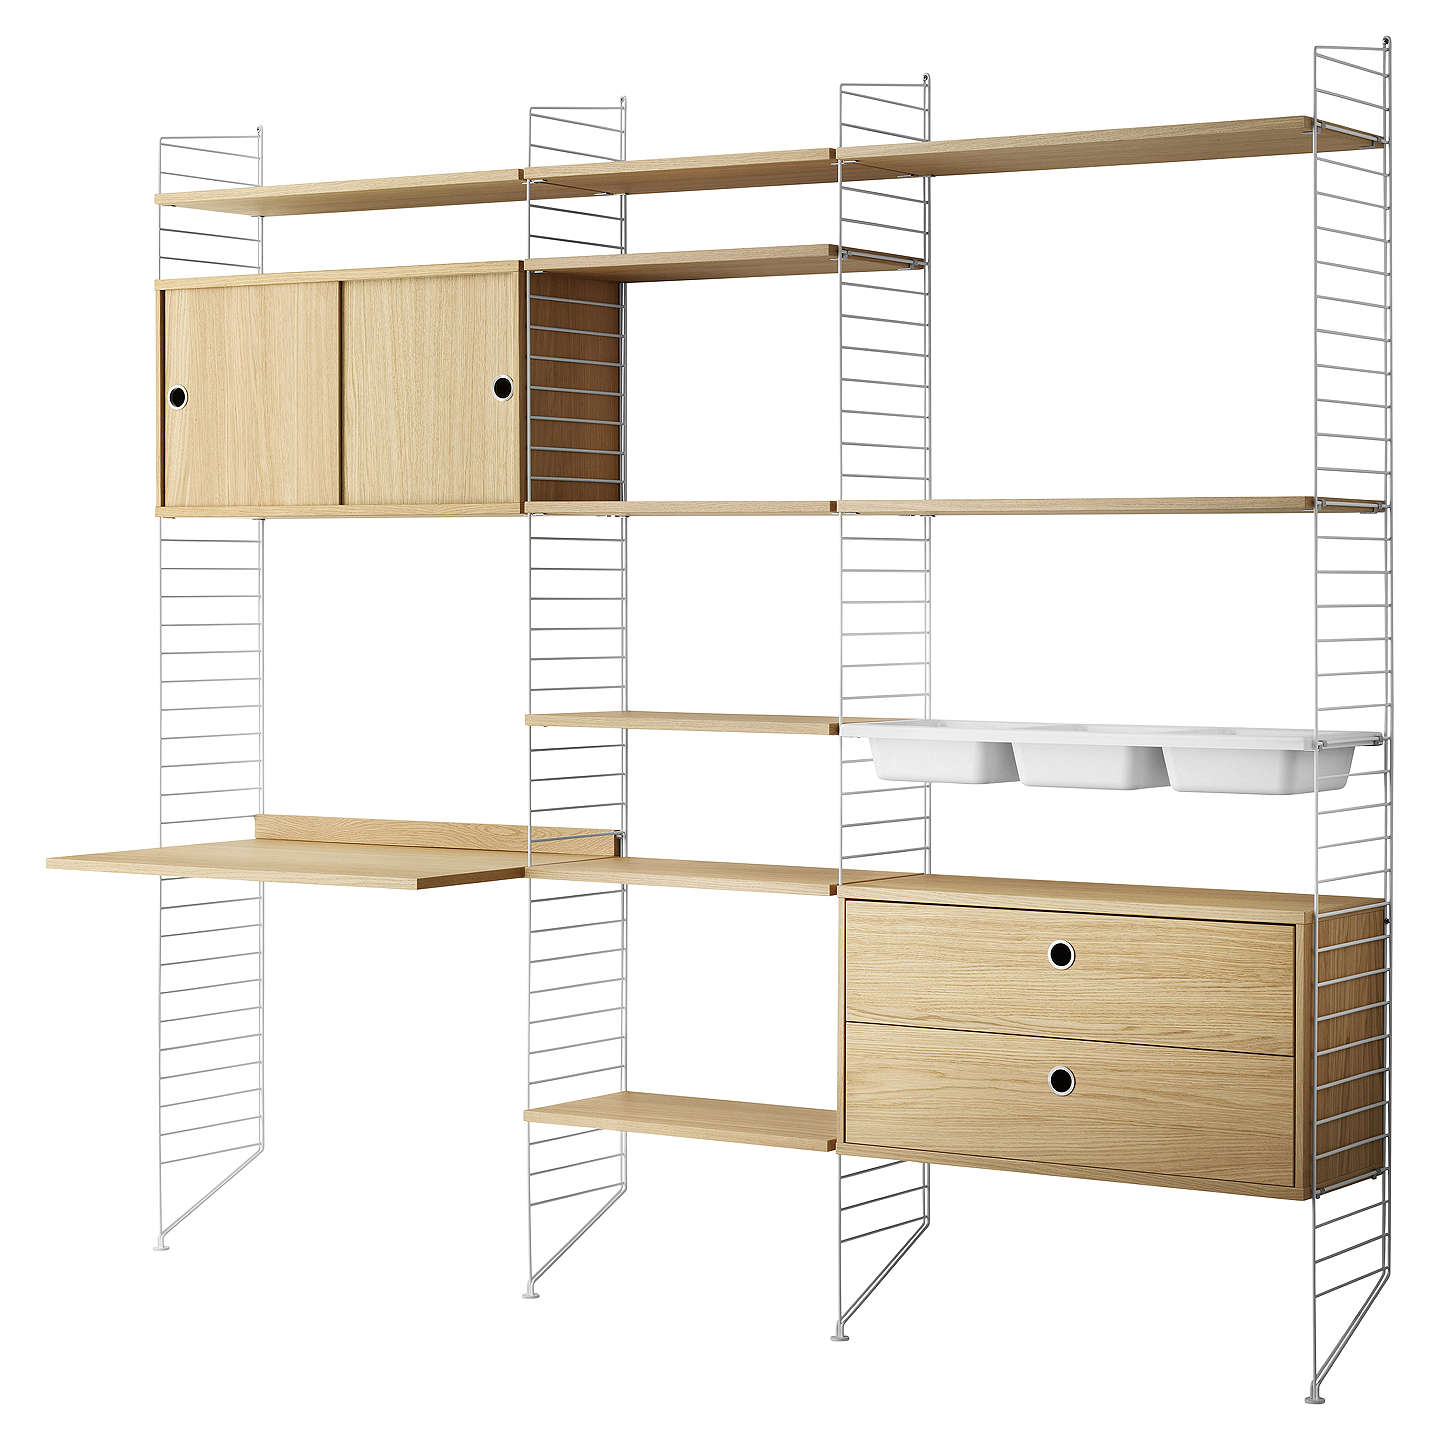 String Shelving Unit With Drawers Cabinet Work Desk Bowl Shelves And Wall Fastened